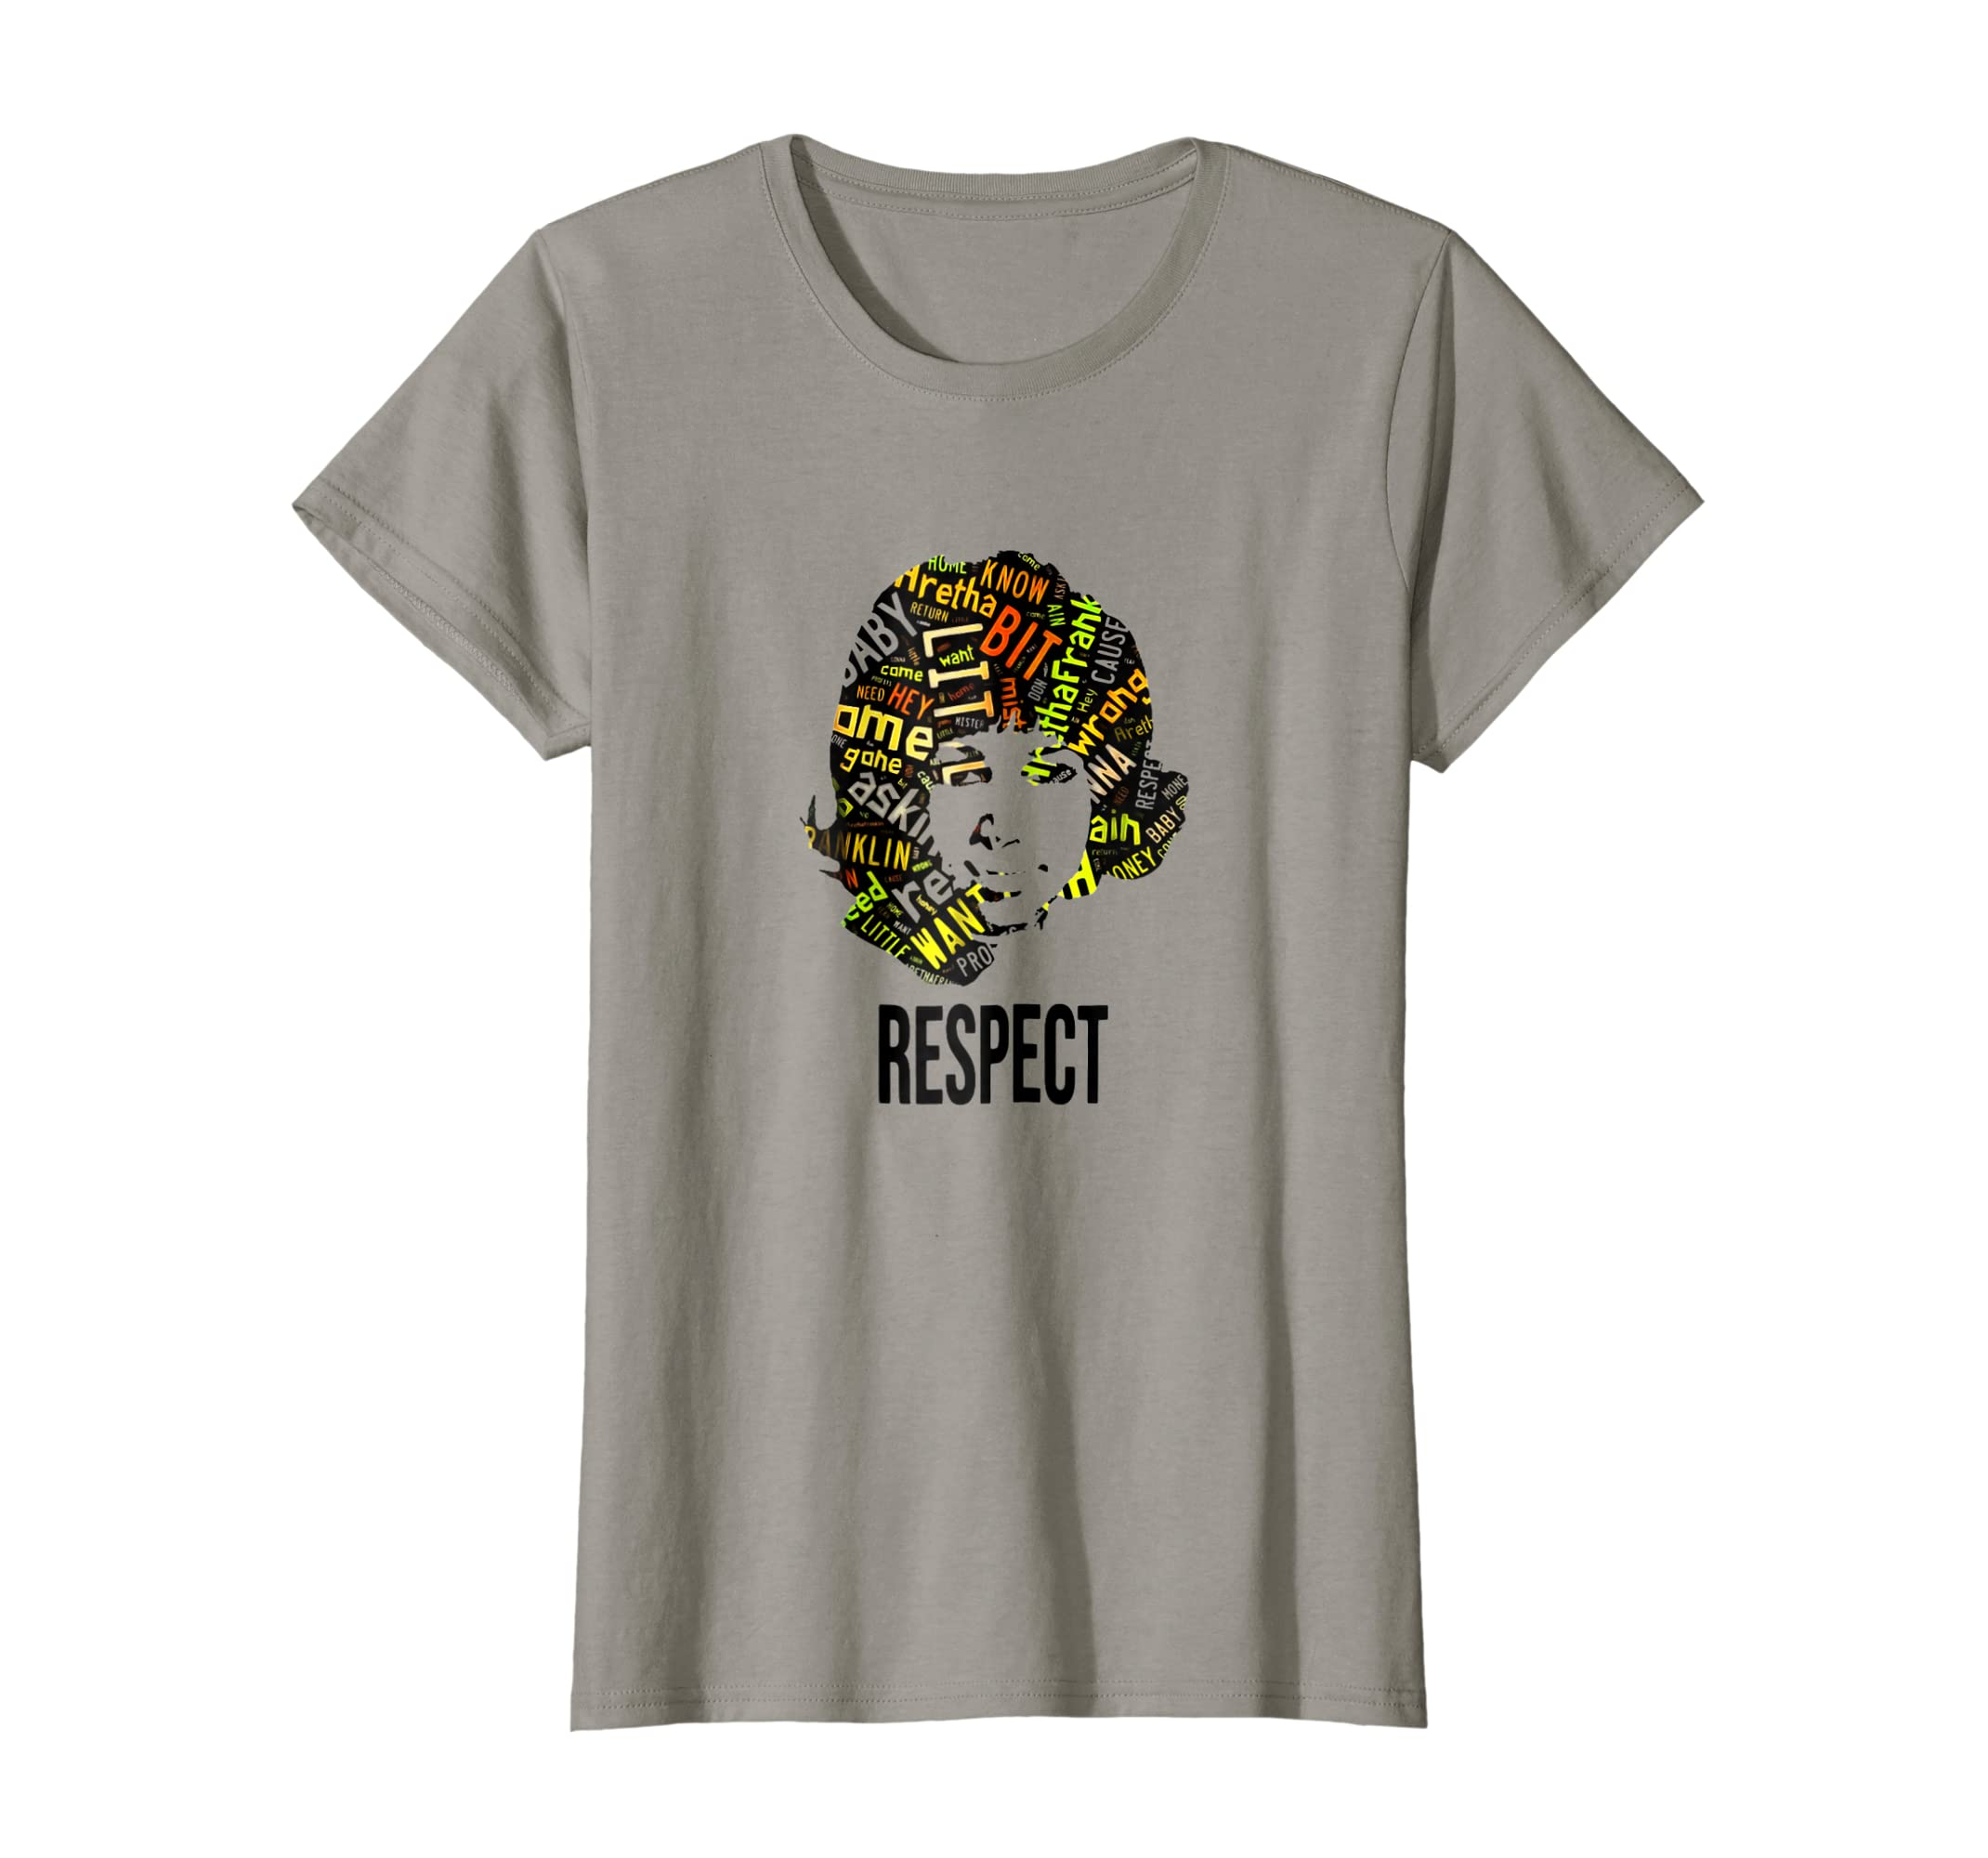 Aretha-Queen-of-Soul-RESPECT t-shirt-Protee